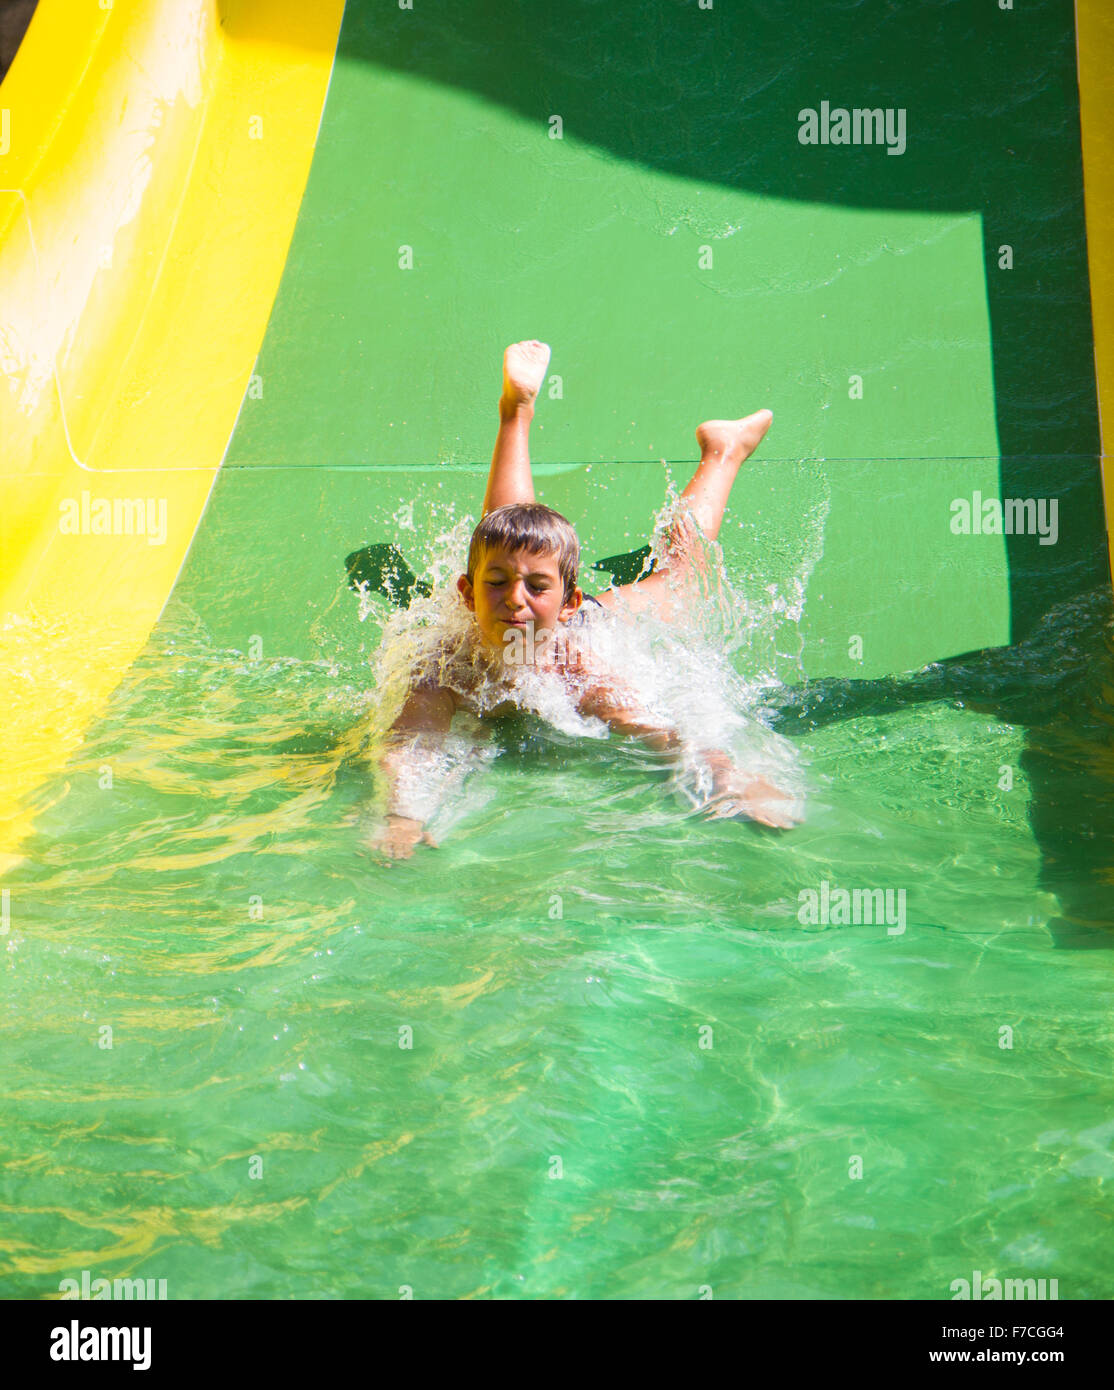 child playing on water slide at amusement park - Stock Image